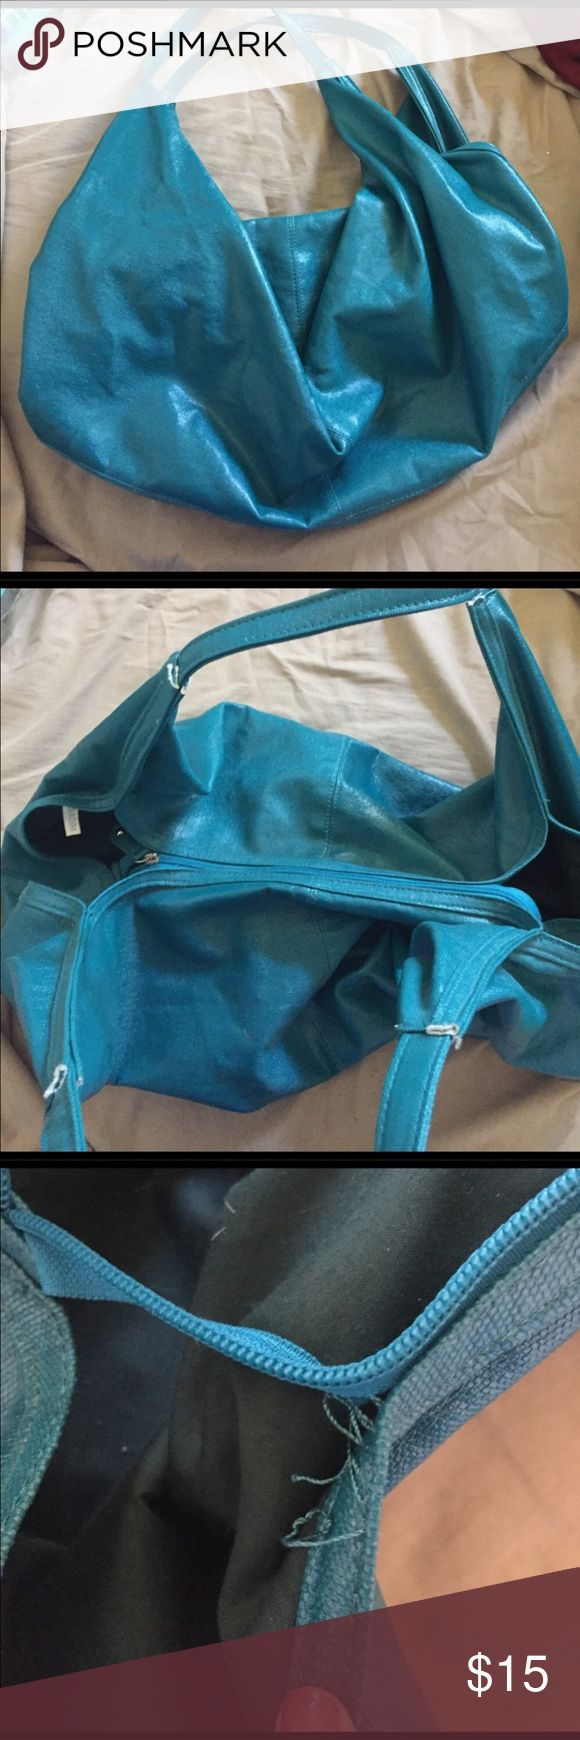 Big Buddha Teal Bag Gorgeous Big Buddha Teal Purse with black interior // Has small tear as shown in photo, doesn't affect the use of the purse Big Buddha Bags Shoulder Bags